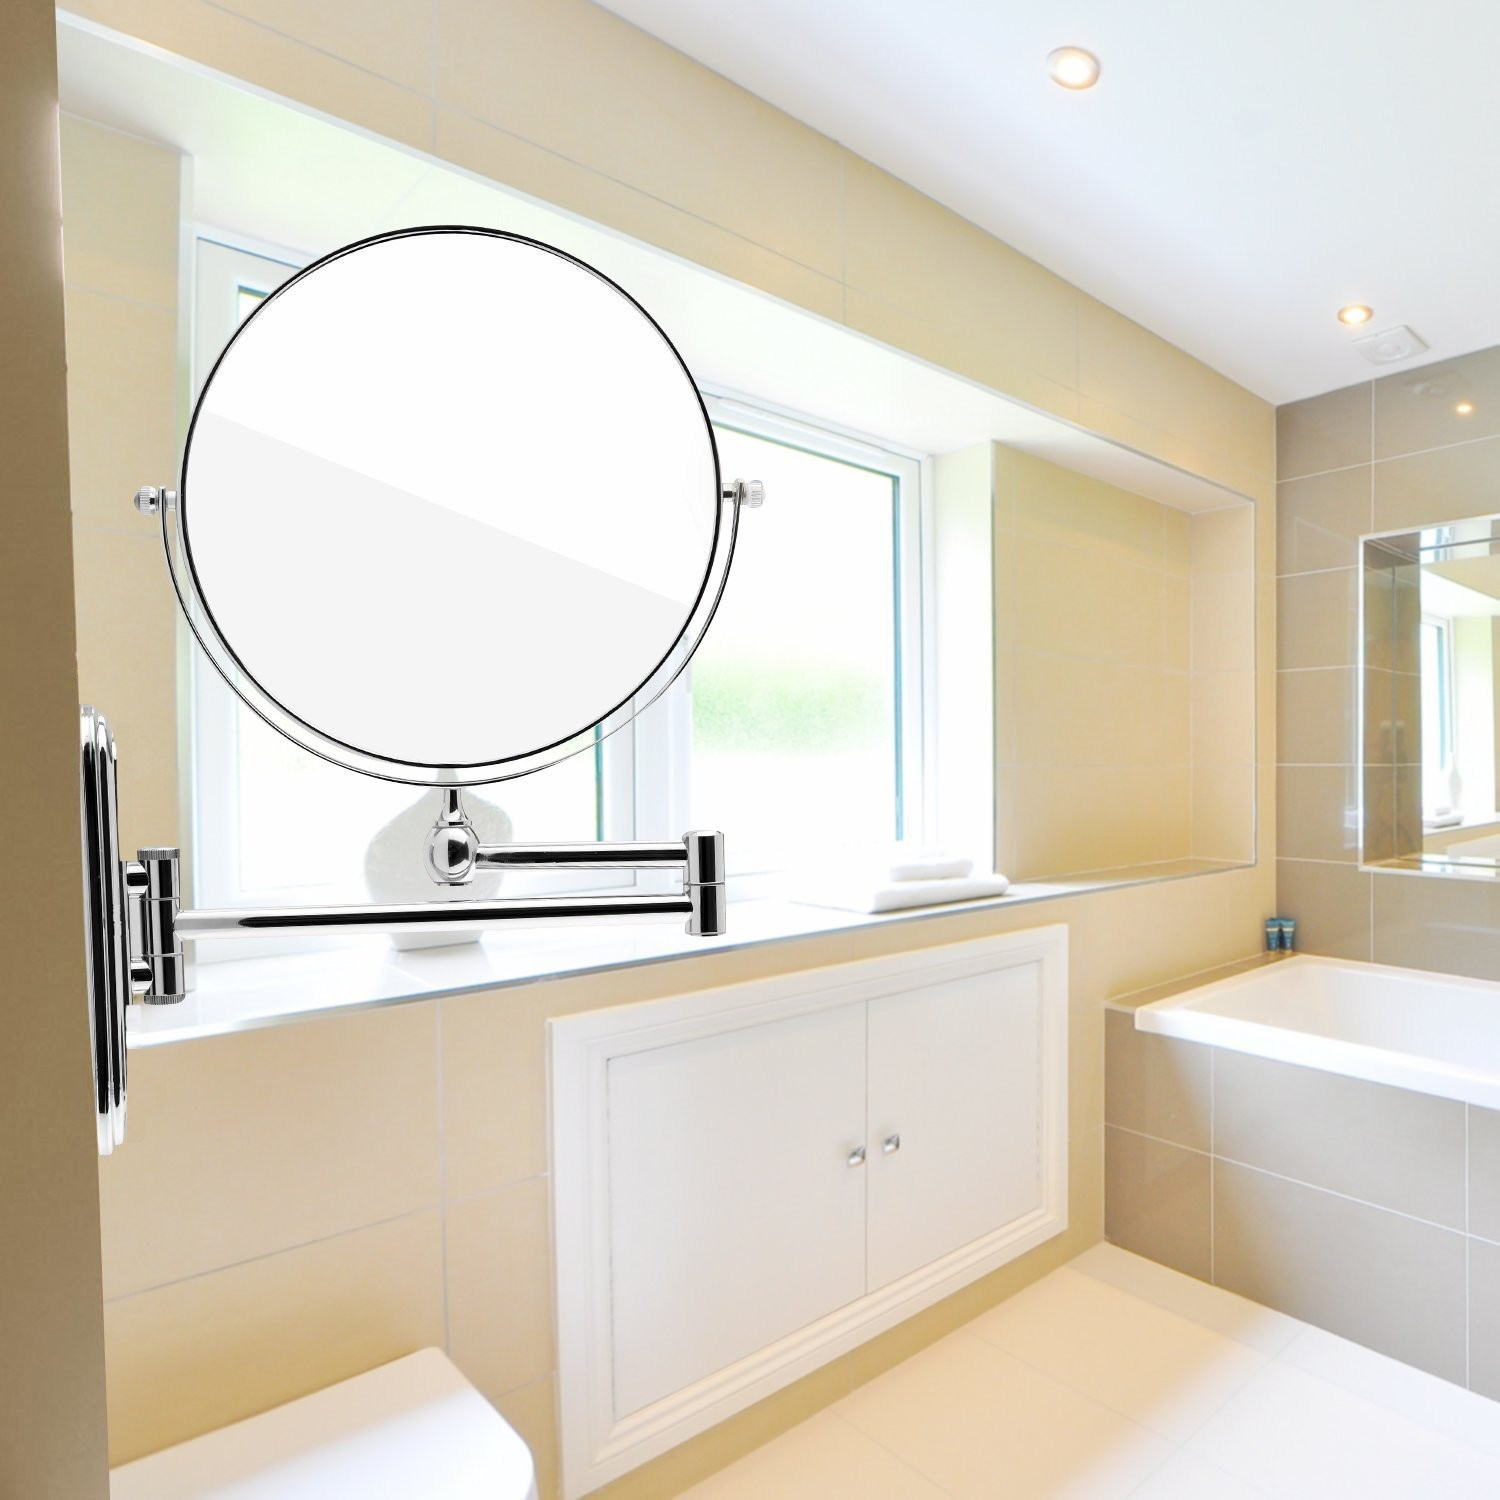 Folding bathroom mirror - 200mm Cosmetic Double Sided 7x Magnifying Mirror Round Brass Wall Mounted Extending Folding Mirrors Bath Toilet